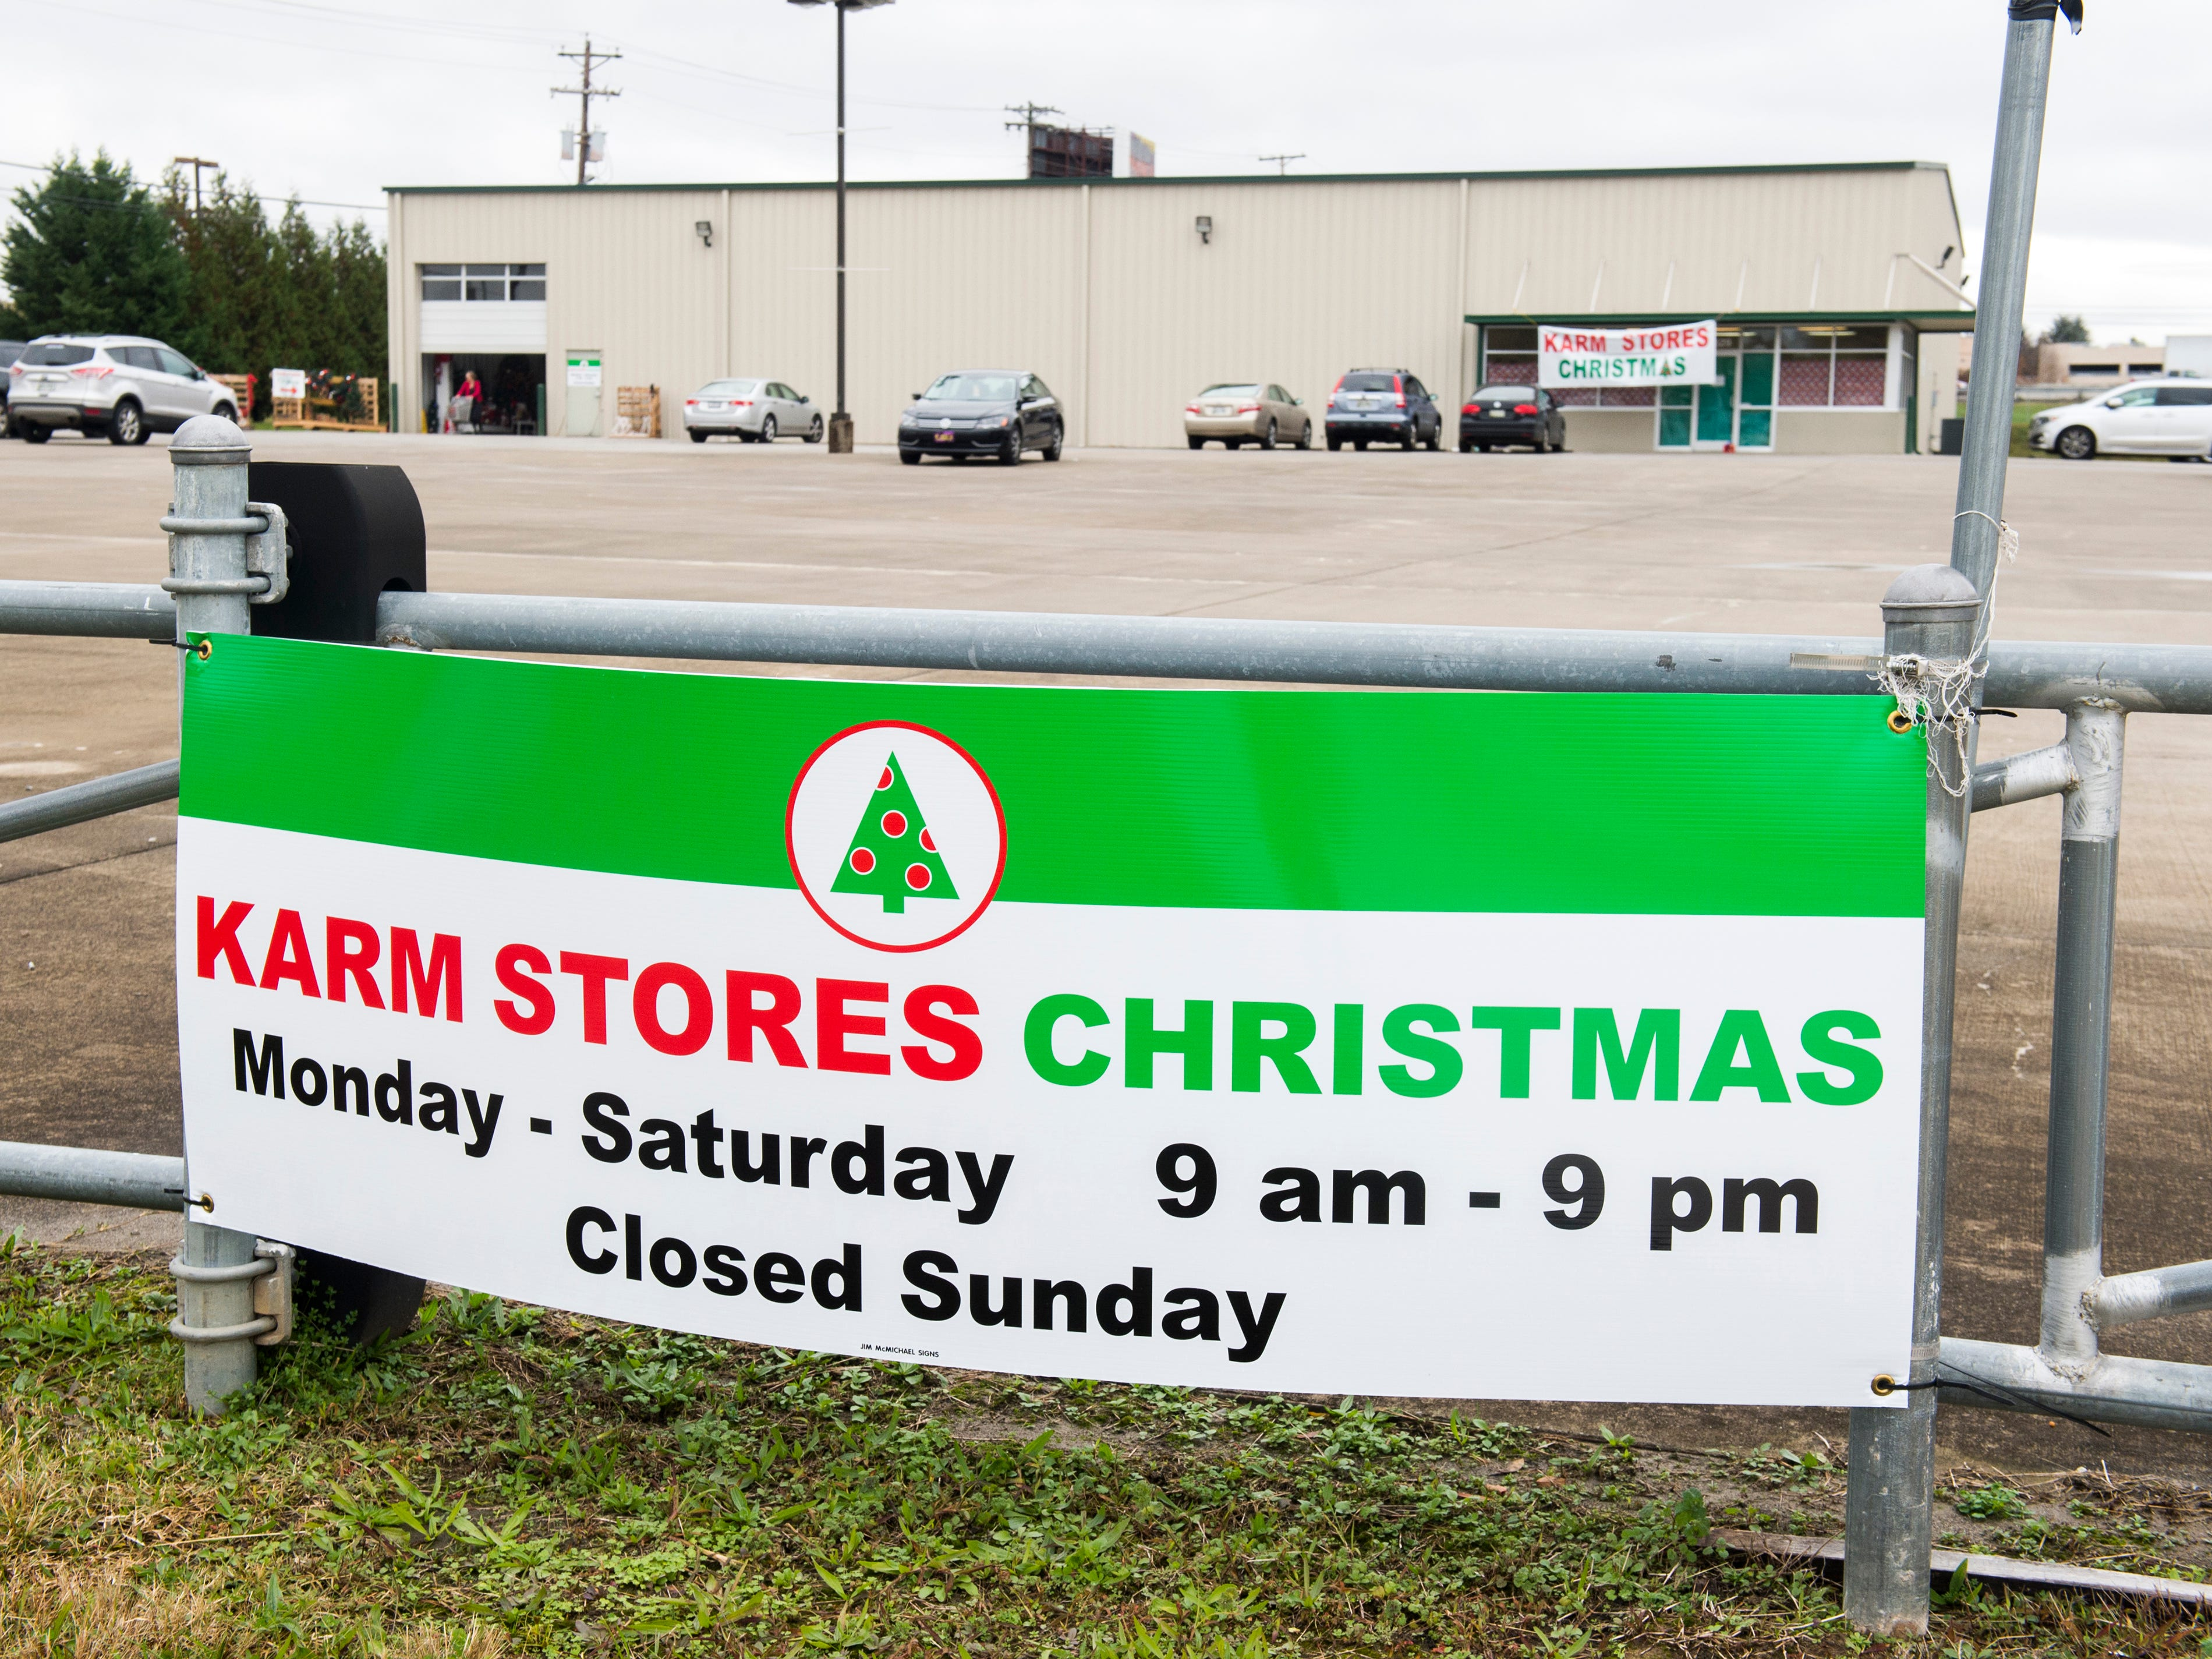 The KARM Christmas Store is located at 9629 Parkside Drive in Knoxville.